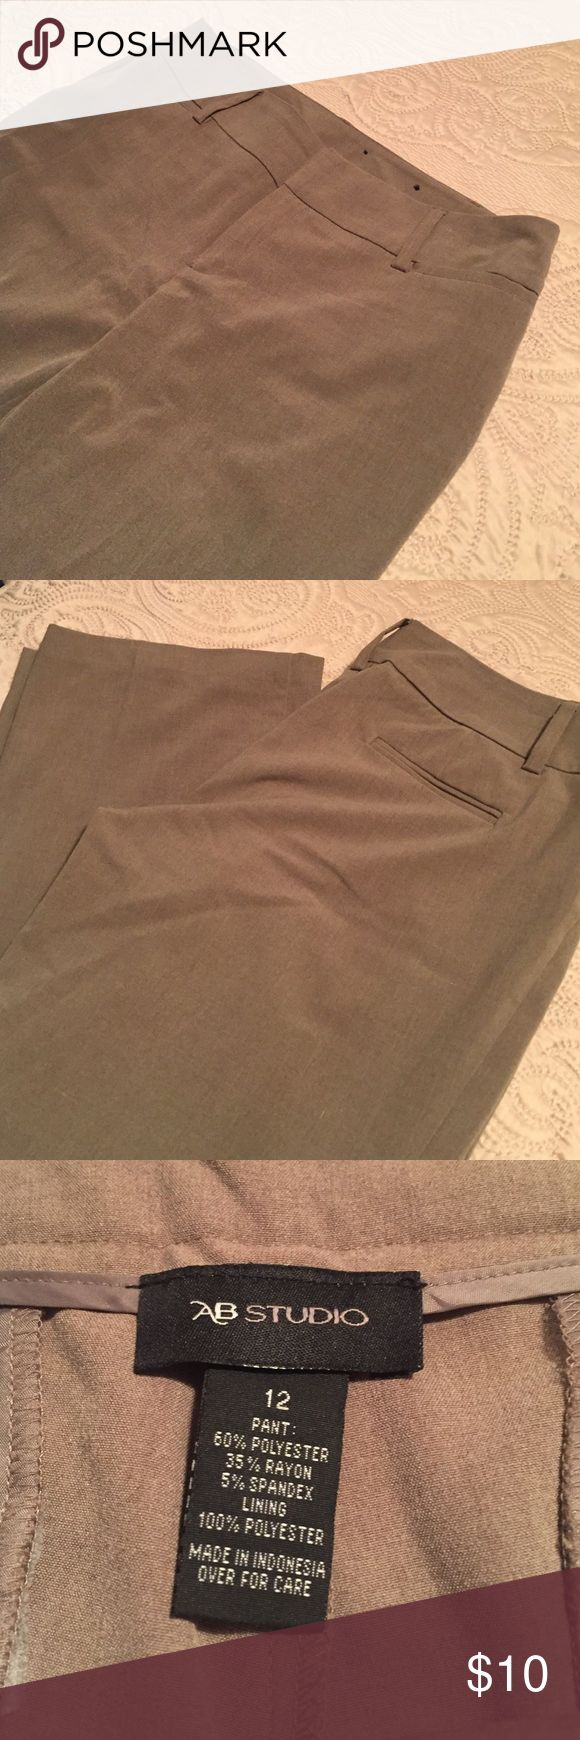 AB Studio khaki slacks Only wore once! Great condition! Very flattering khaki slacks, perfect for work or interviews! AB Studio Pants Trousers